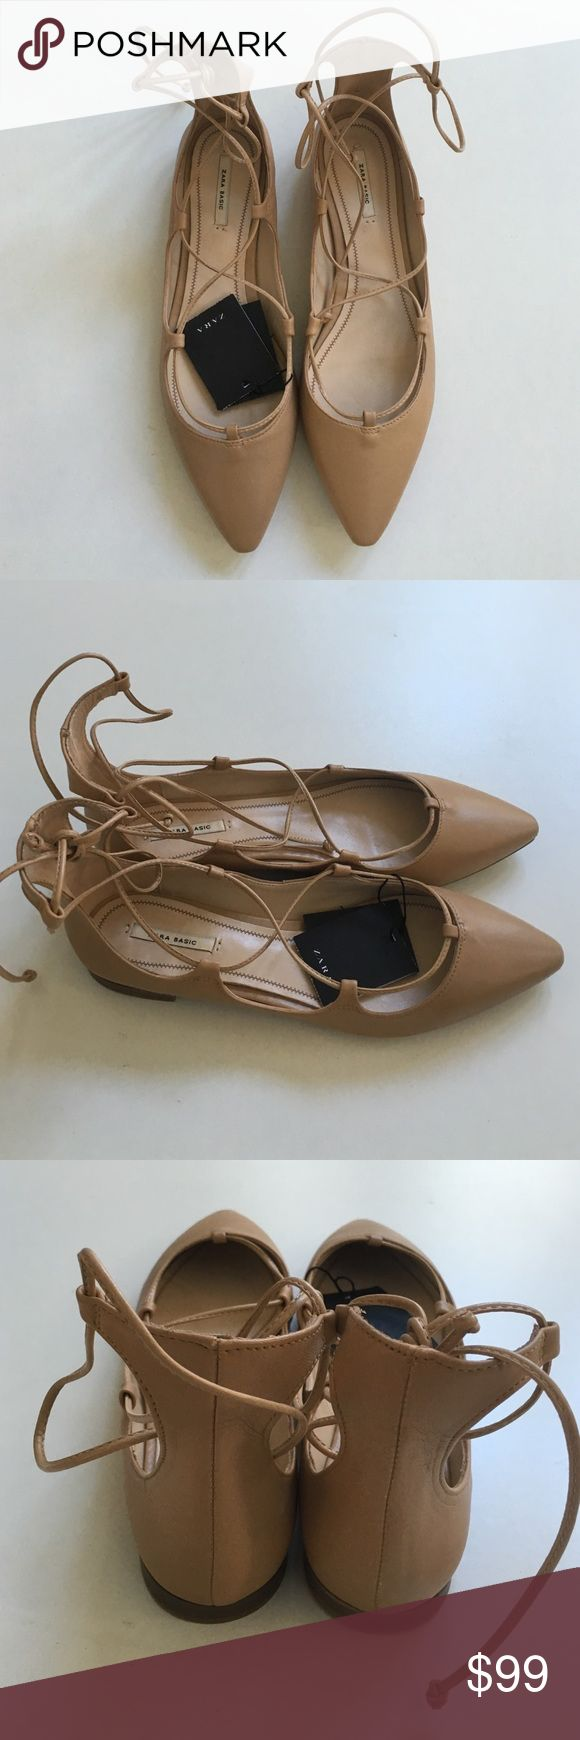 Zara Leather Lace Up Flats  Beige Tan 9 US 40 EUR 6444 Item Number, size 9 US, size 40 EUR, UK 7 Zara Shoes Flats & Loafers